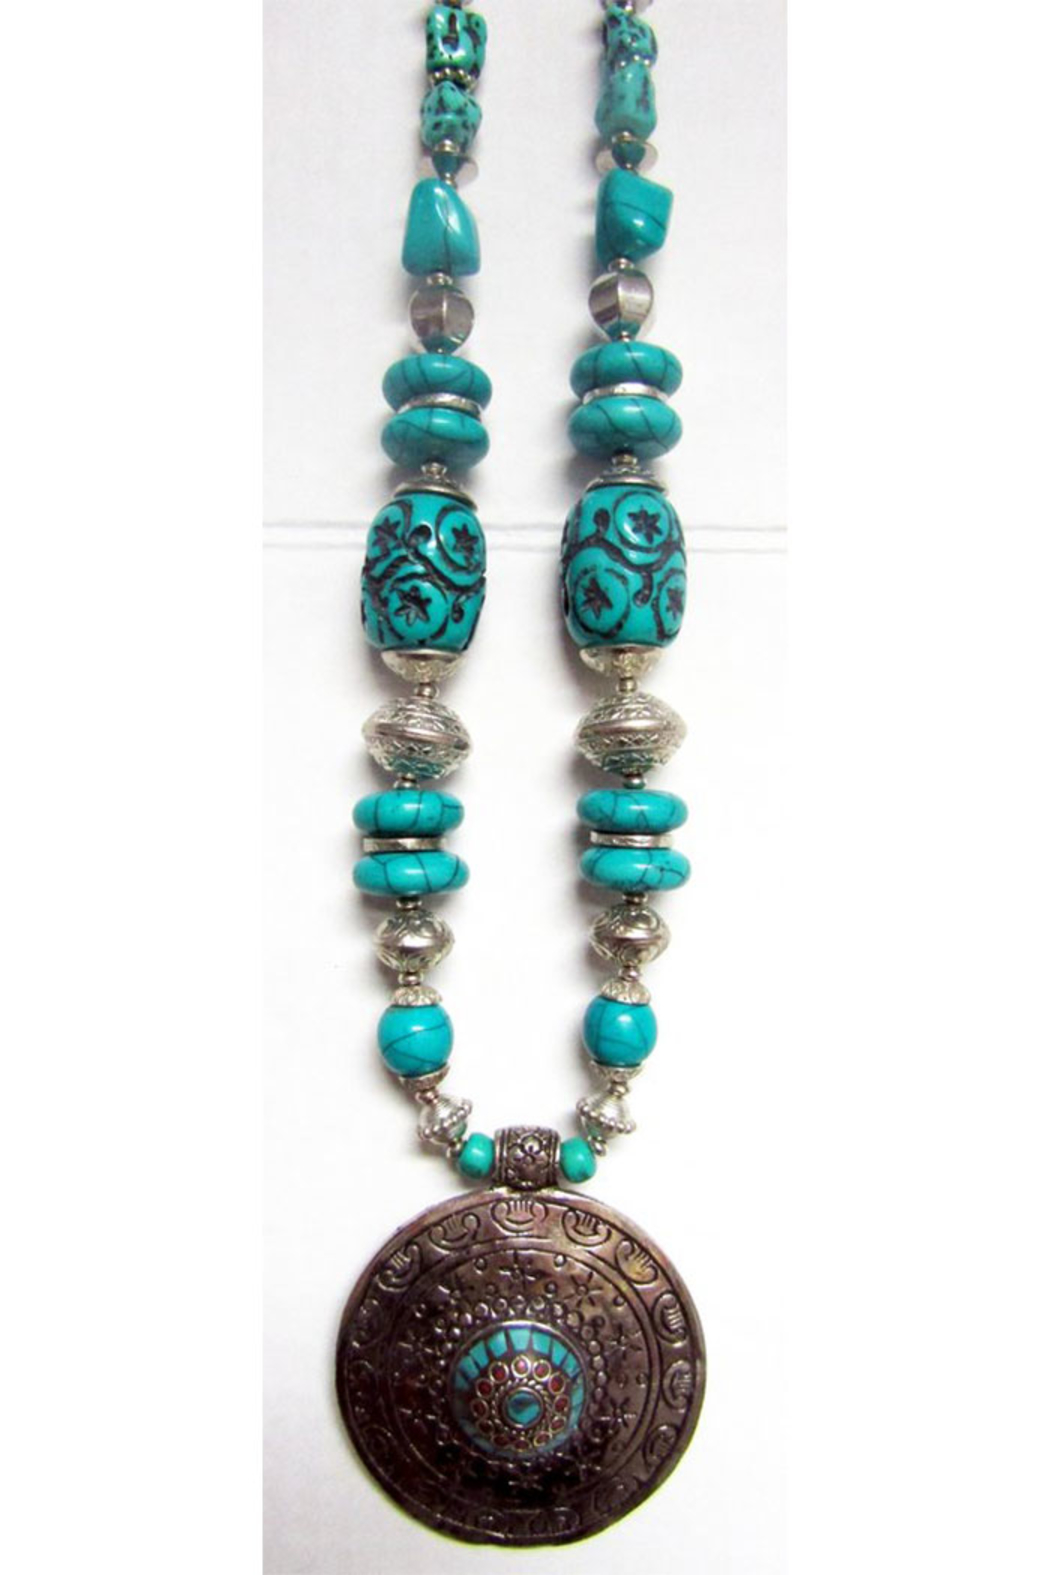 KIMBALS Tibetan Bohemian Style Beaded Necklace In Silver/Turquoise - Main Image